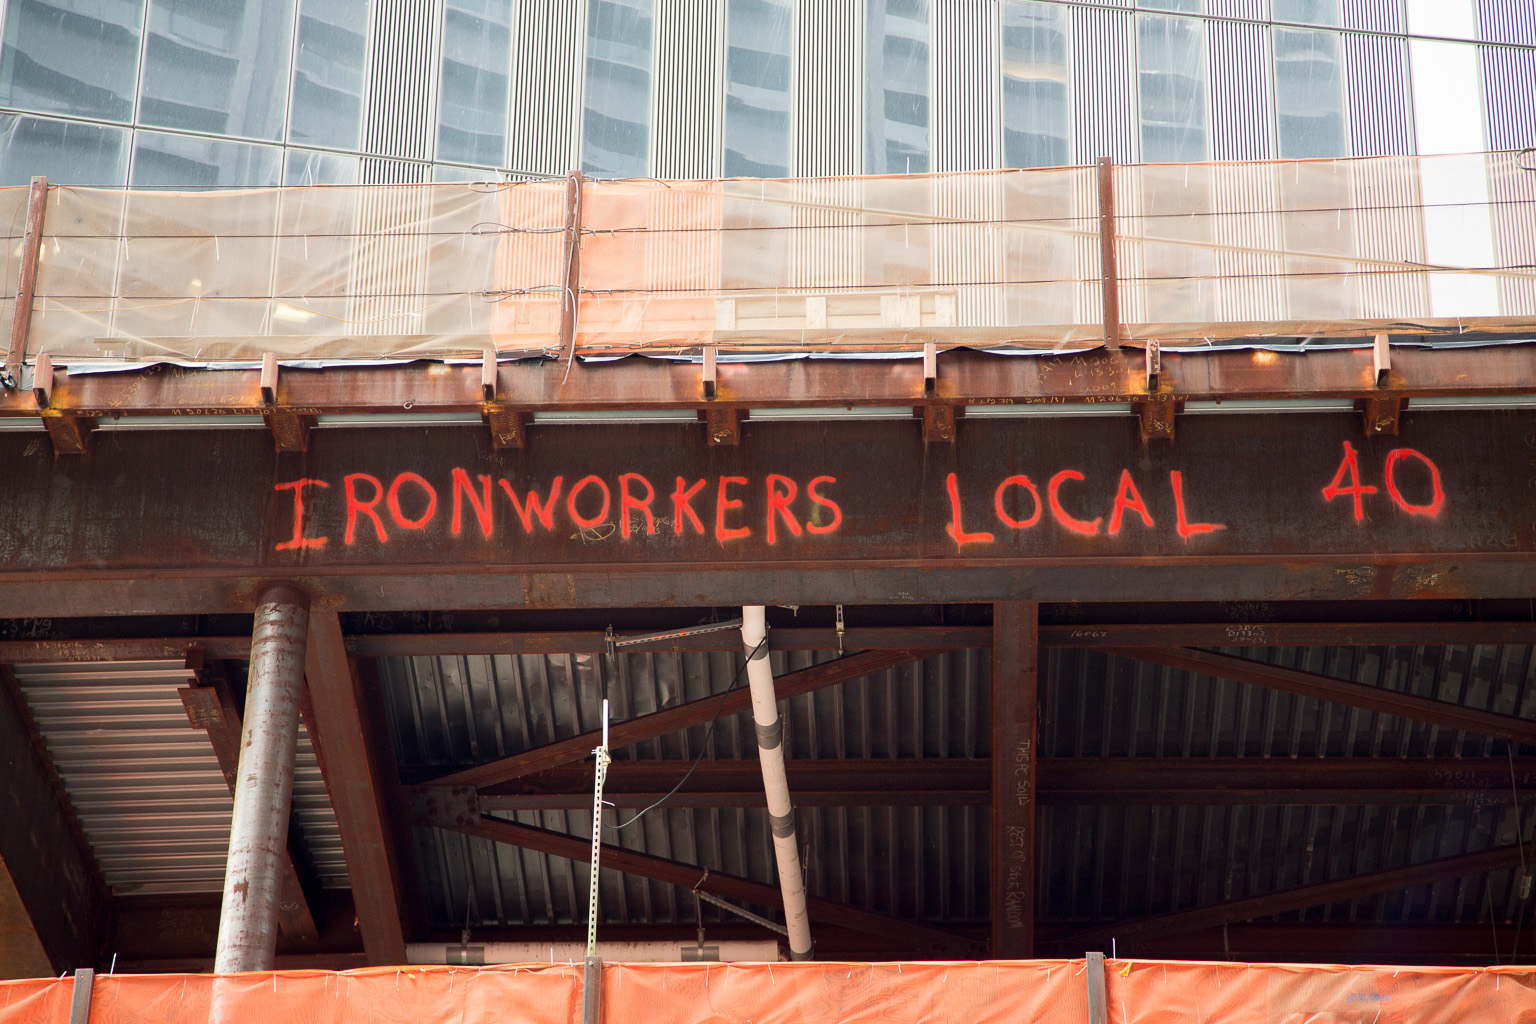 Ironworkers Local 40